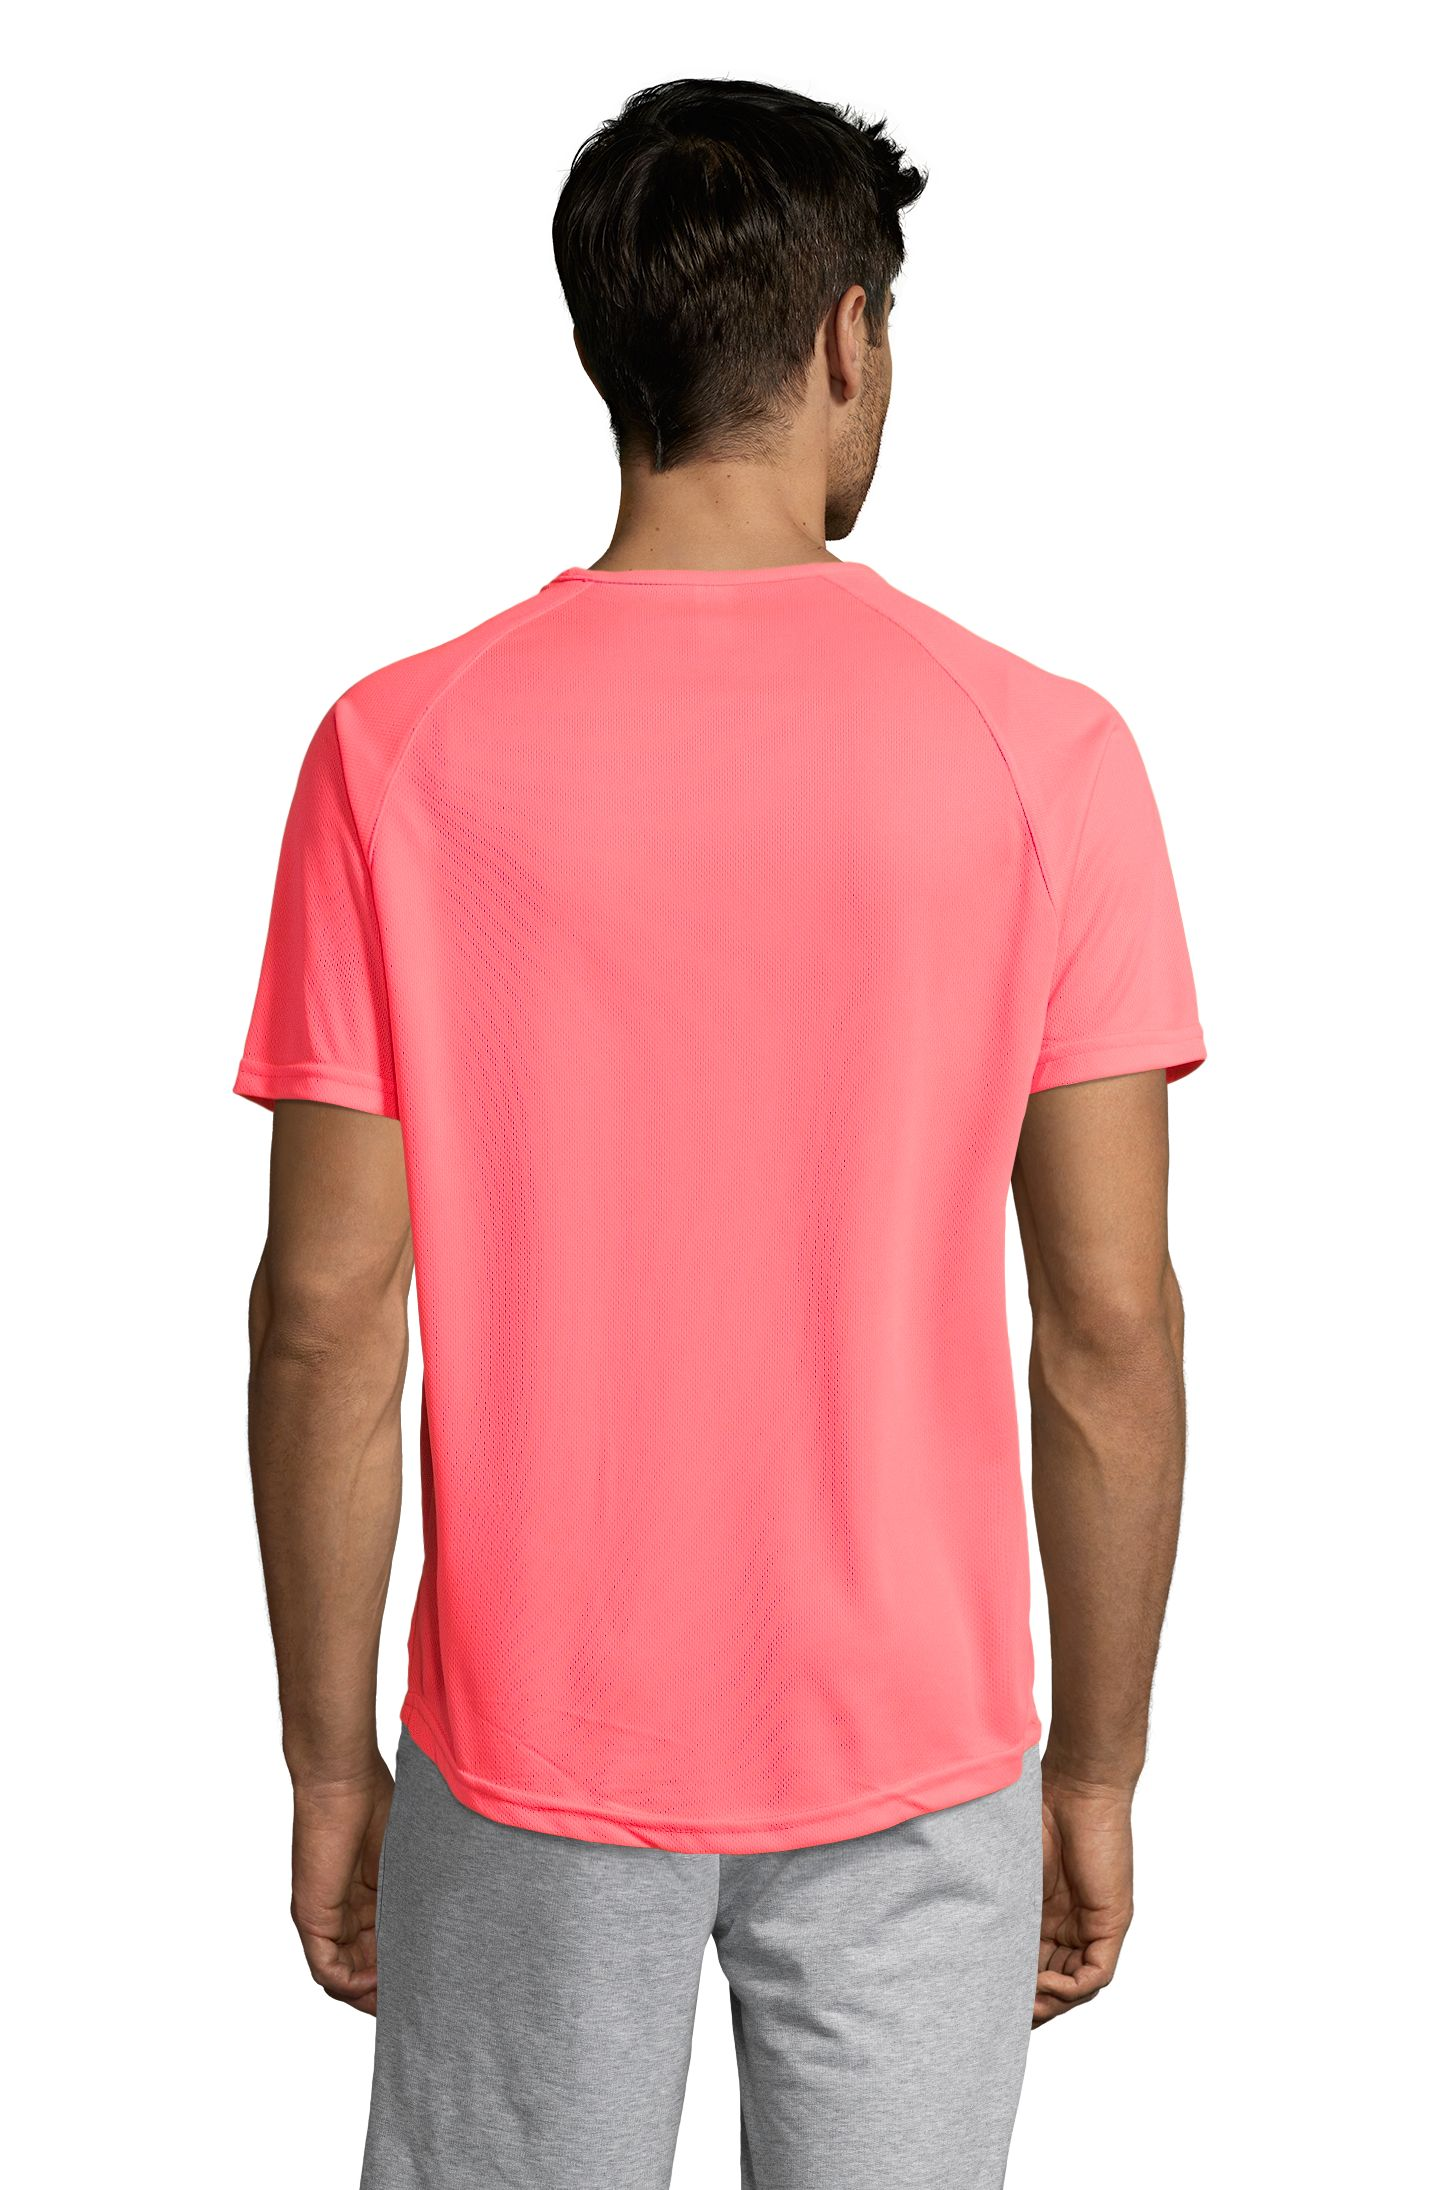 153 - Corail fluo